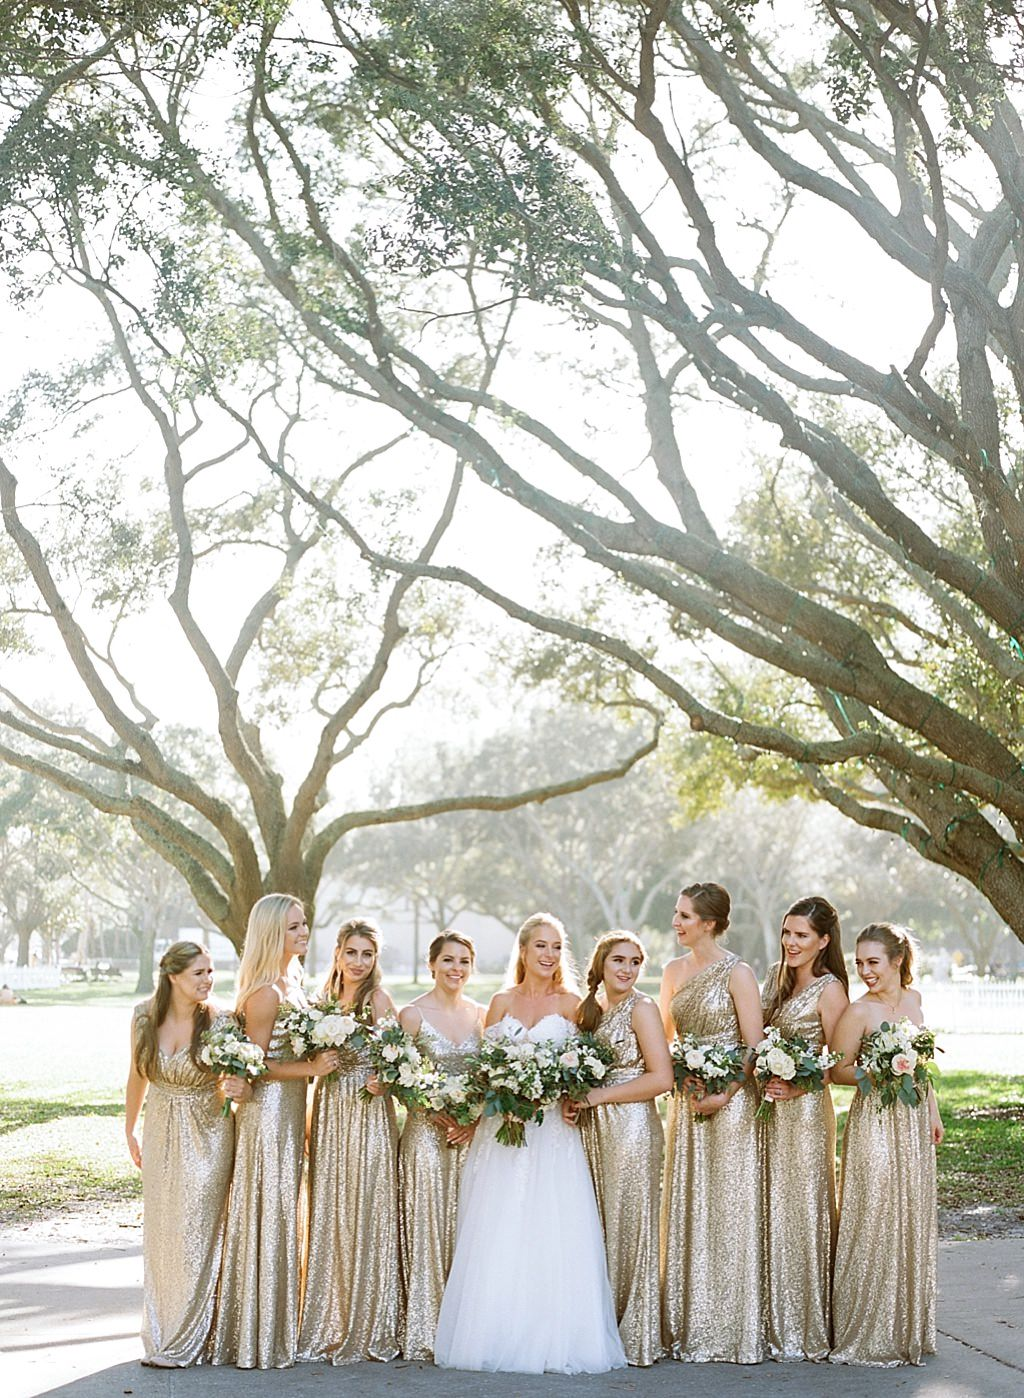 Outdoor Elegant Bride in Ballgown Wedding Dress and Bridesmaids in Randy Fenoli Matching Gold Sequin Dresses with Garden Inspired Floral Bouquets Bridal Party Portrait